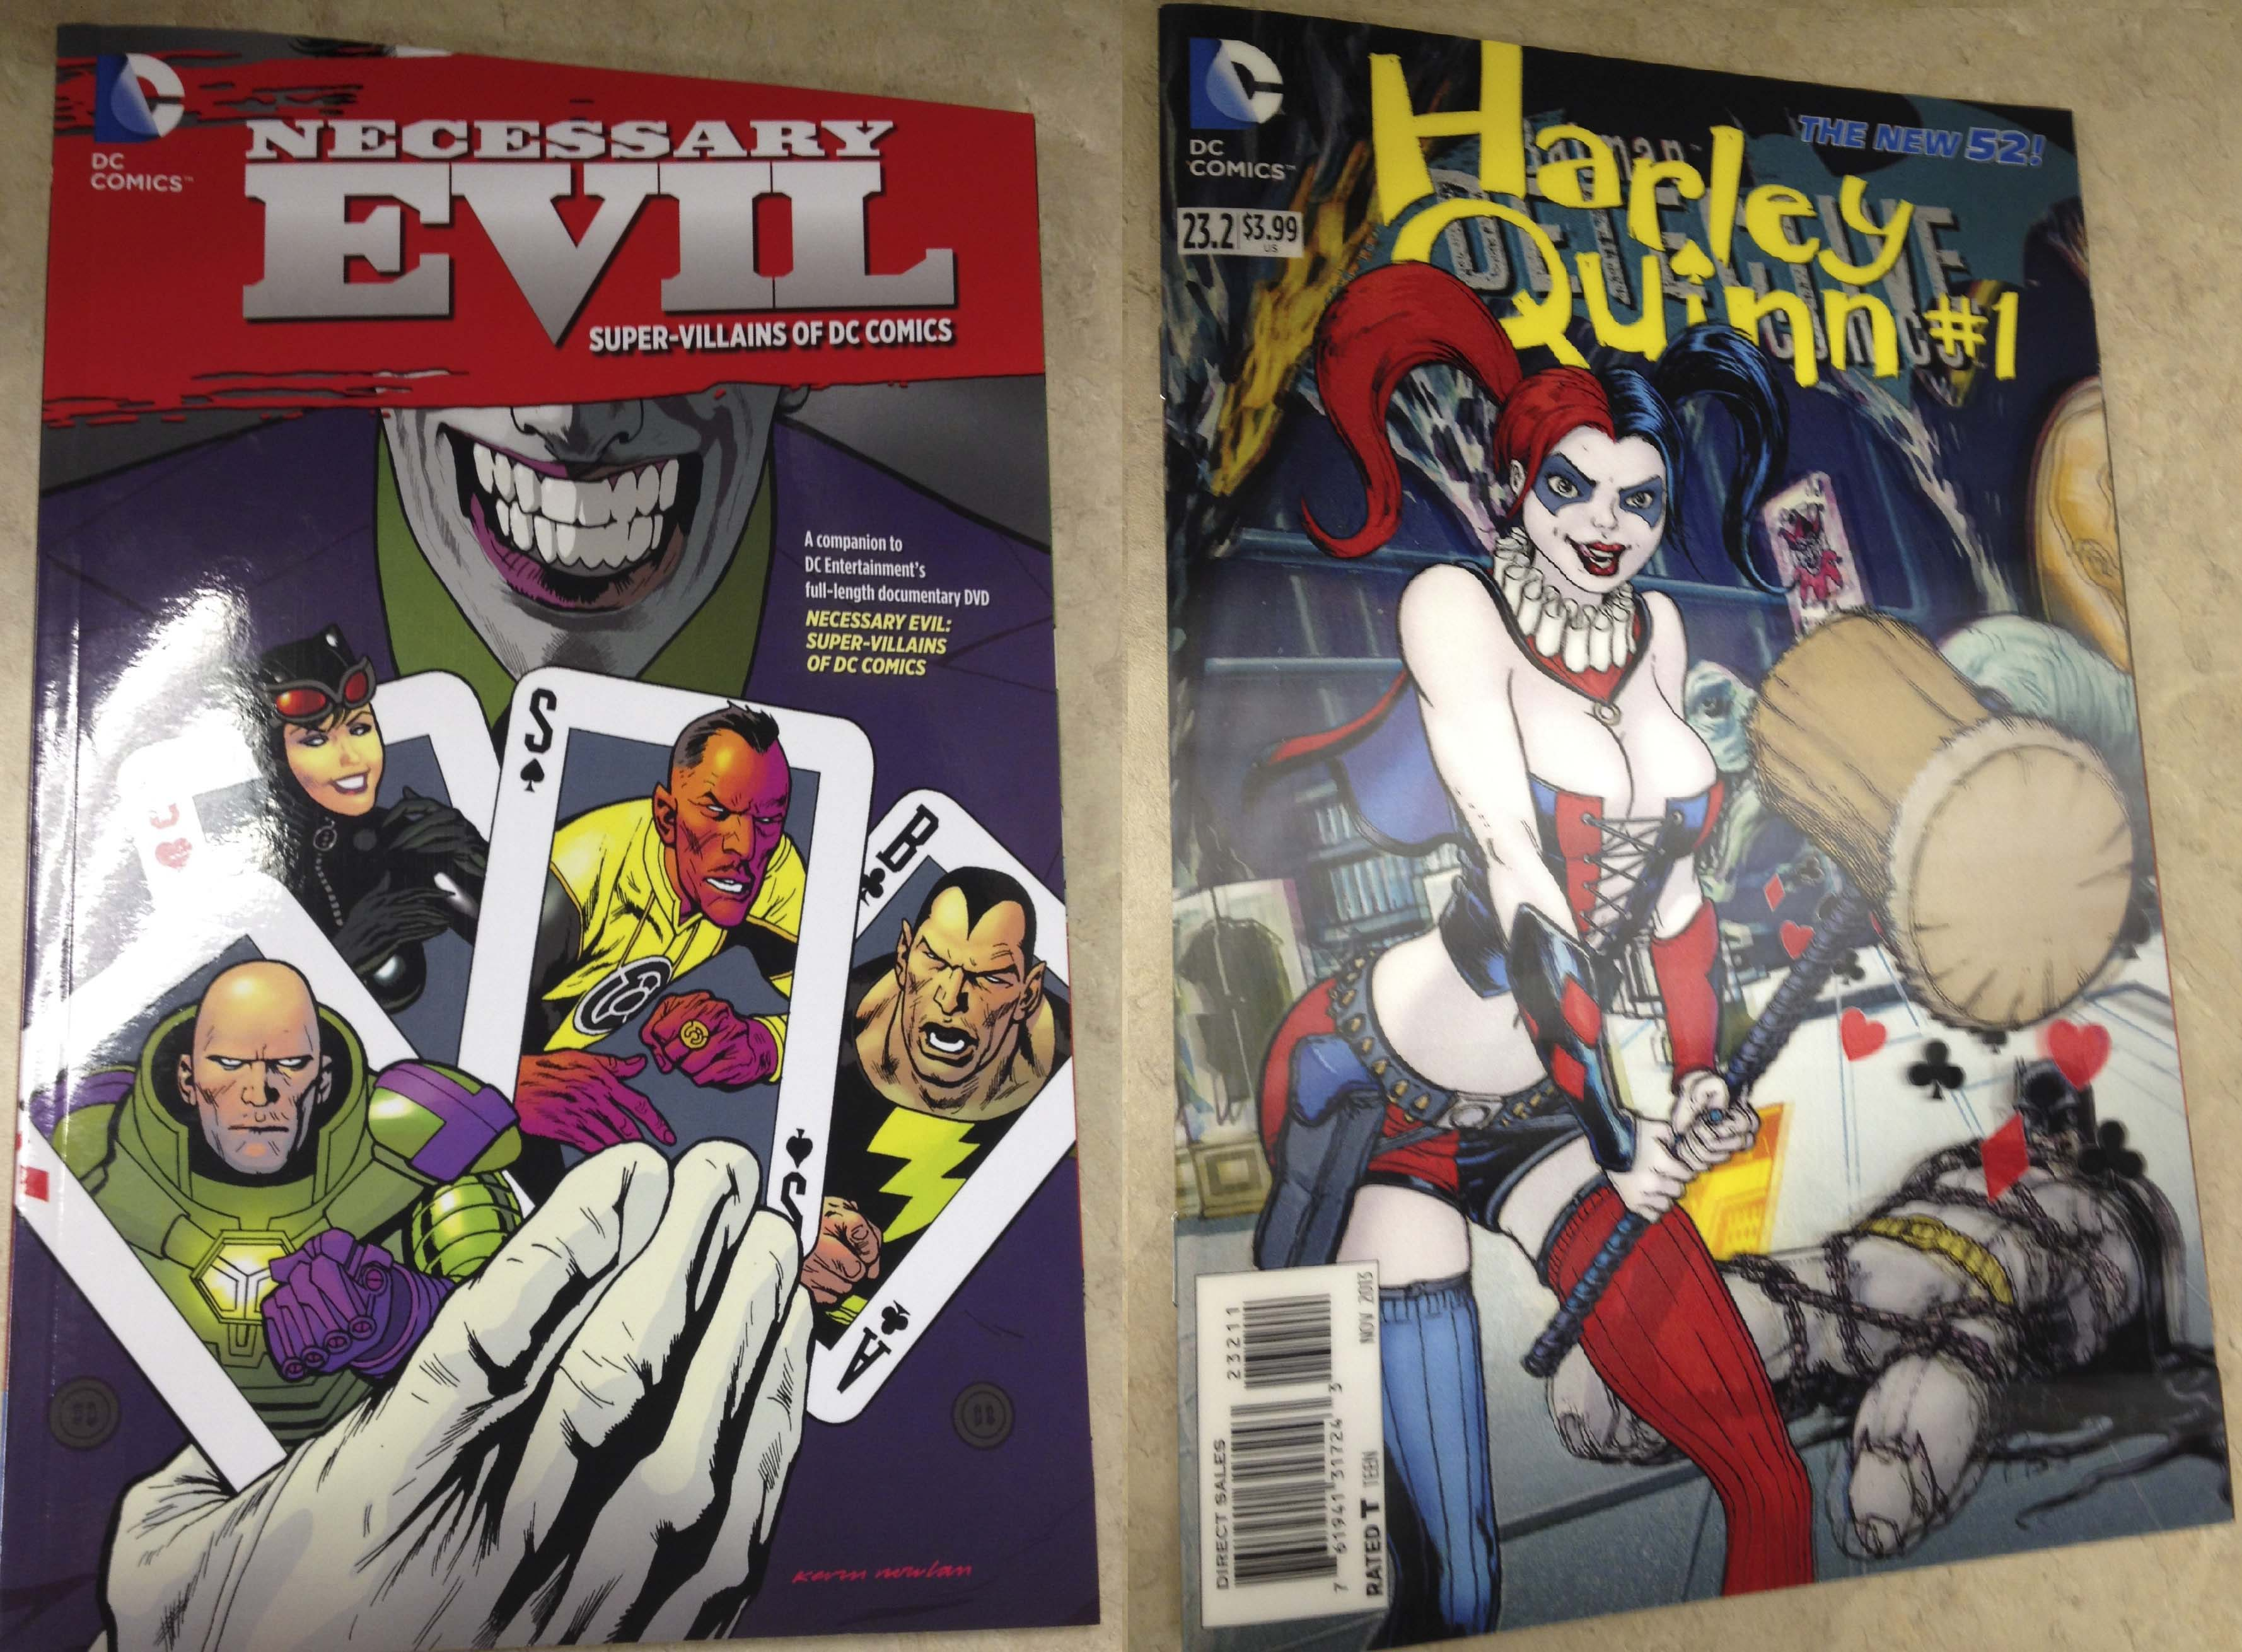 necessary evel and harley  quinn